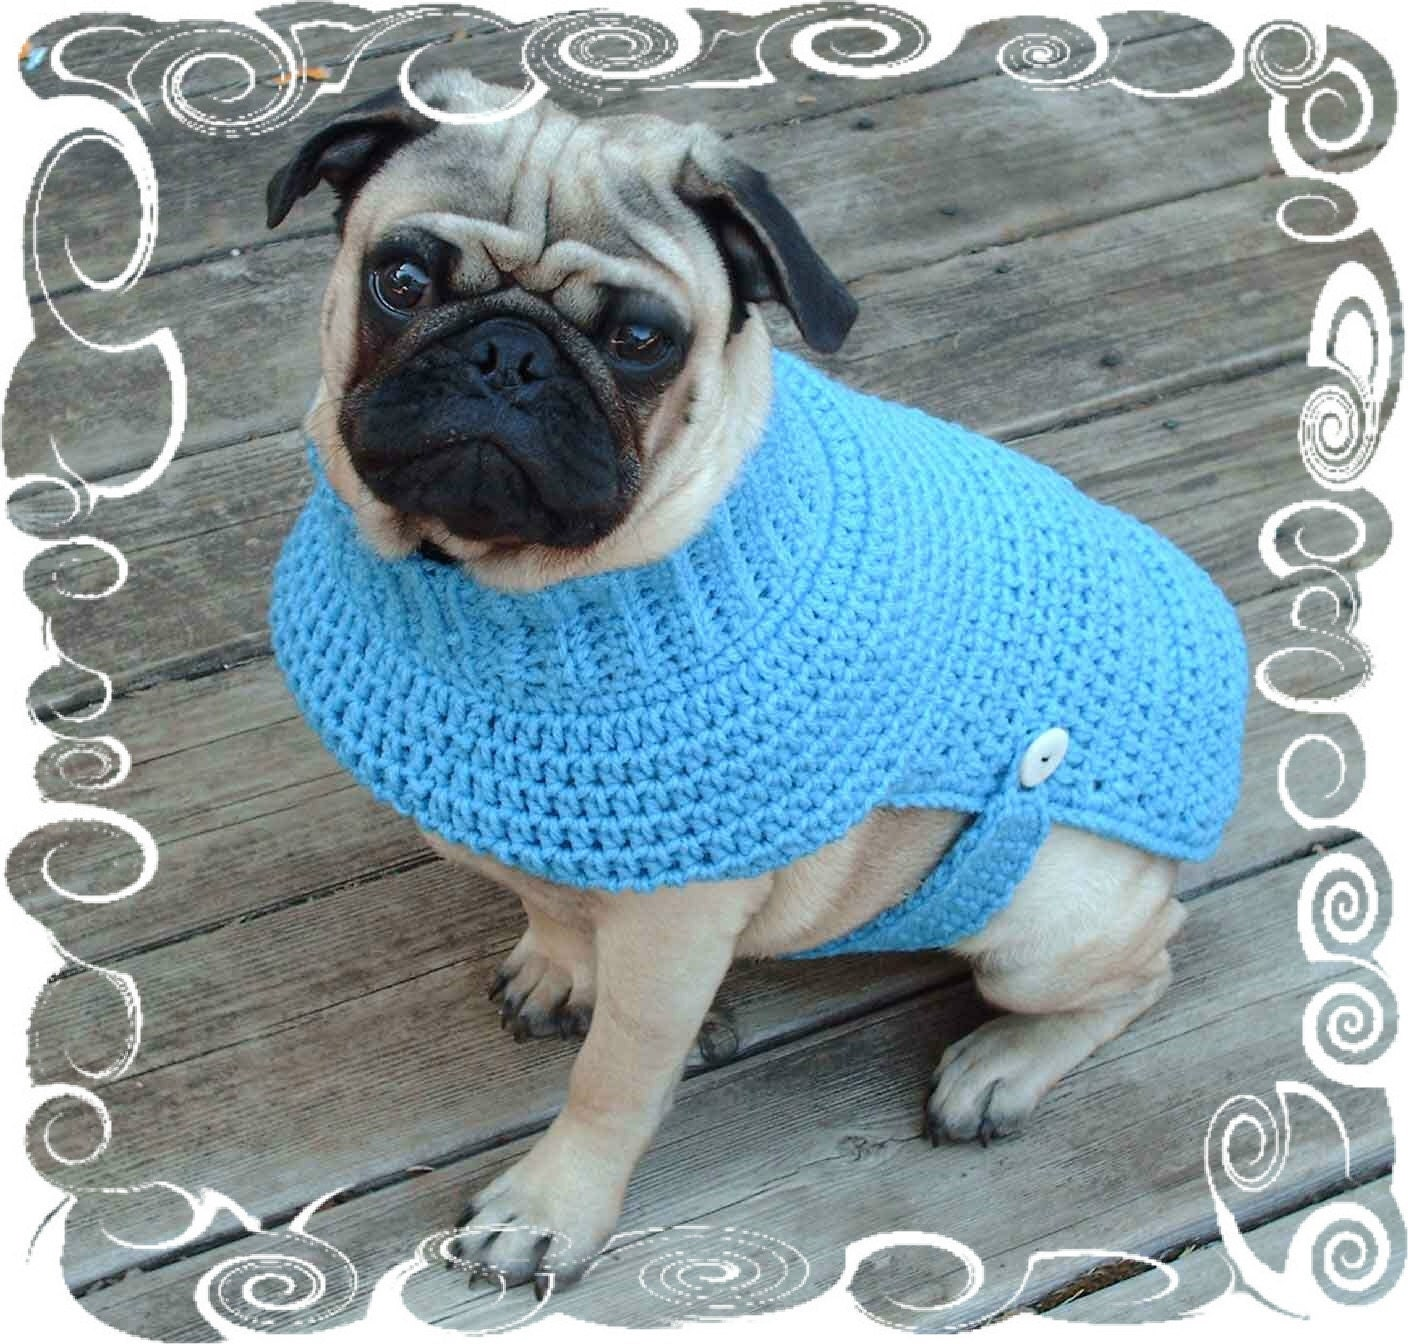 Crochet pet sweaters free patterns squareone for dog sweater crochet pattern puppy crochet sweater by hmcquigg bankloansurffo Gallery